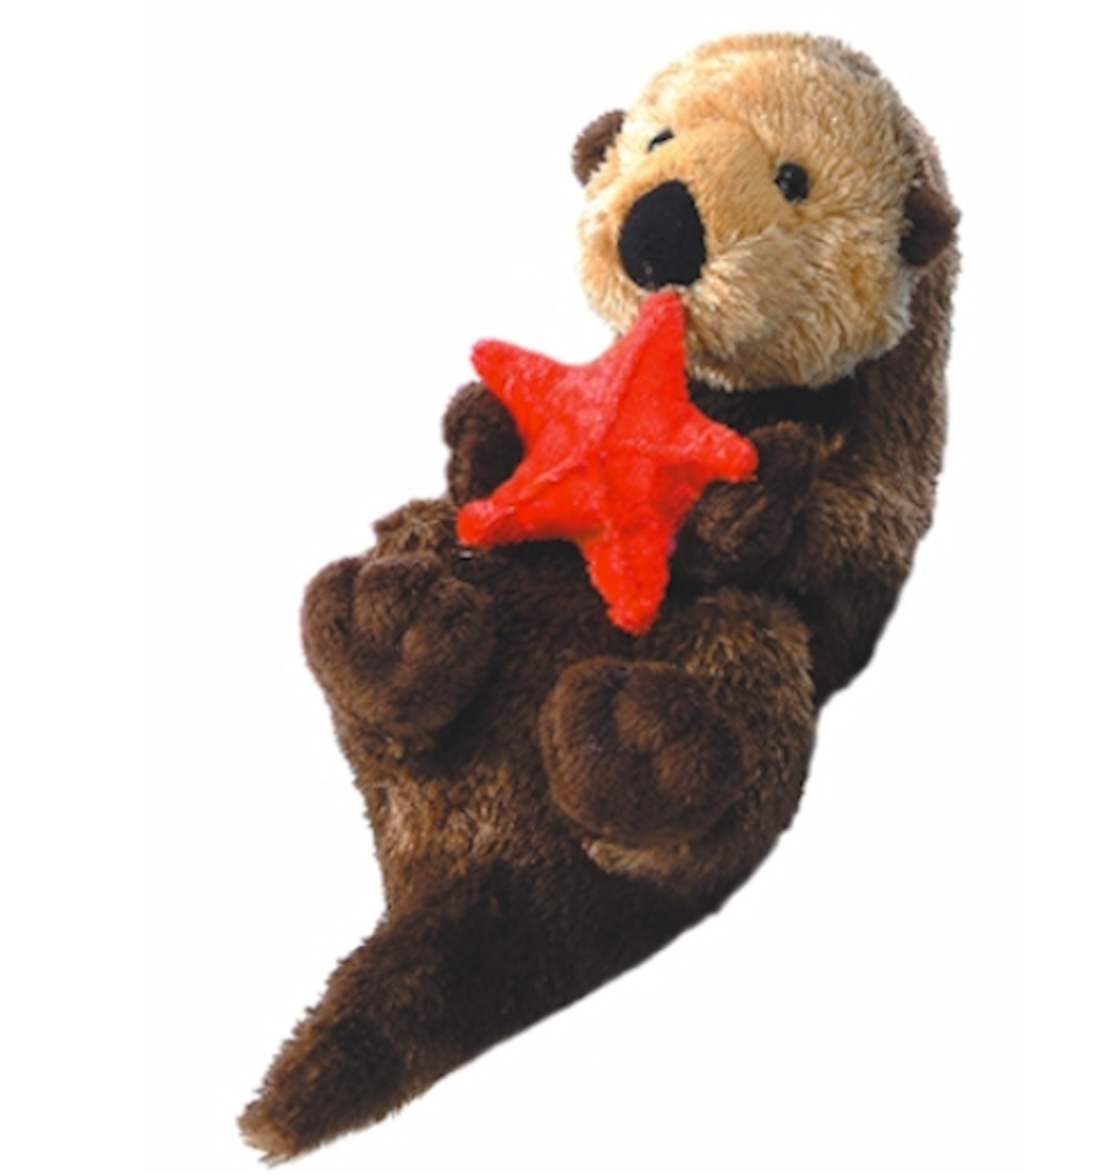 Otto the Stuffed Otter and Red Starfish Friend 8 inches long